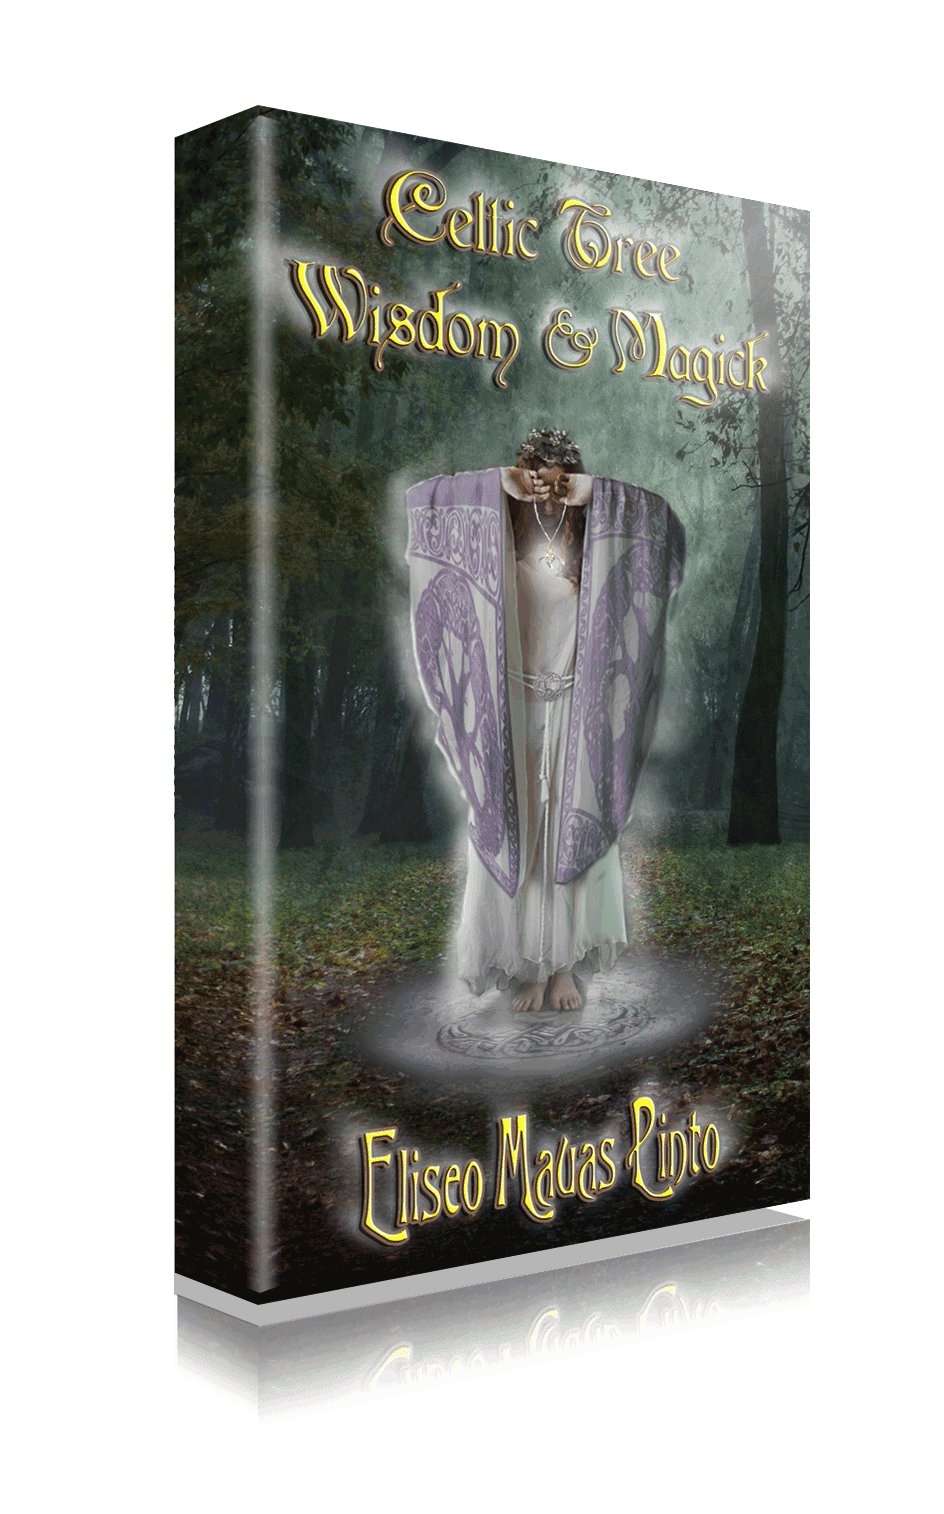 http://www.amazon.com/Celtic-Wisdom-Magick-Eliseo-Mauas-ebook/dp/B00HG7GFDQ/ref=tmm_kin_swatch_0?_encoding=UTF8&sr=&qid=